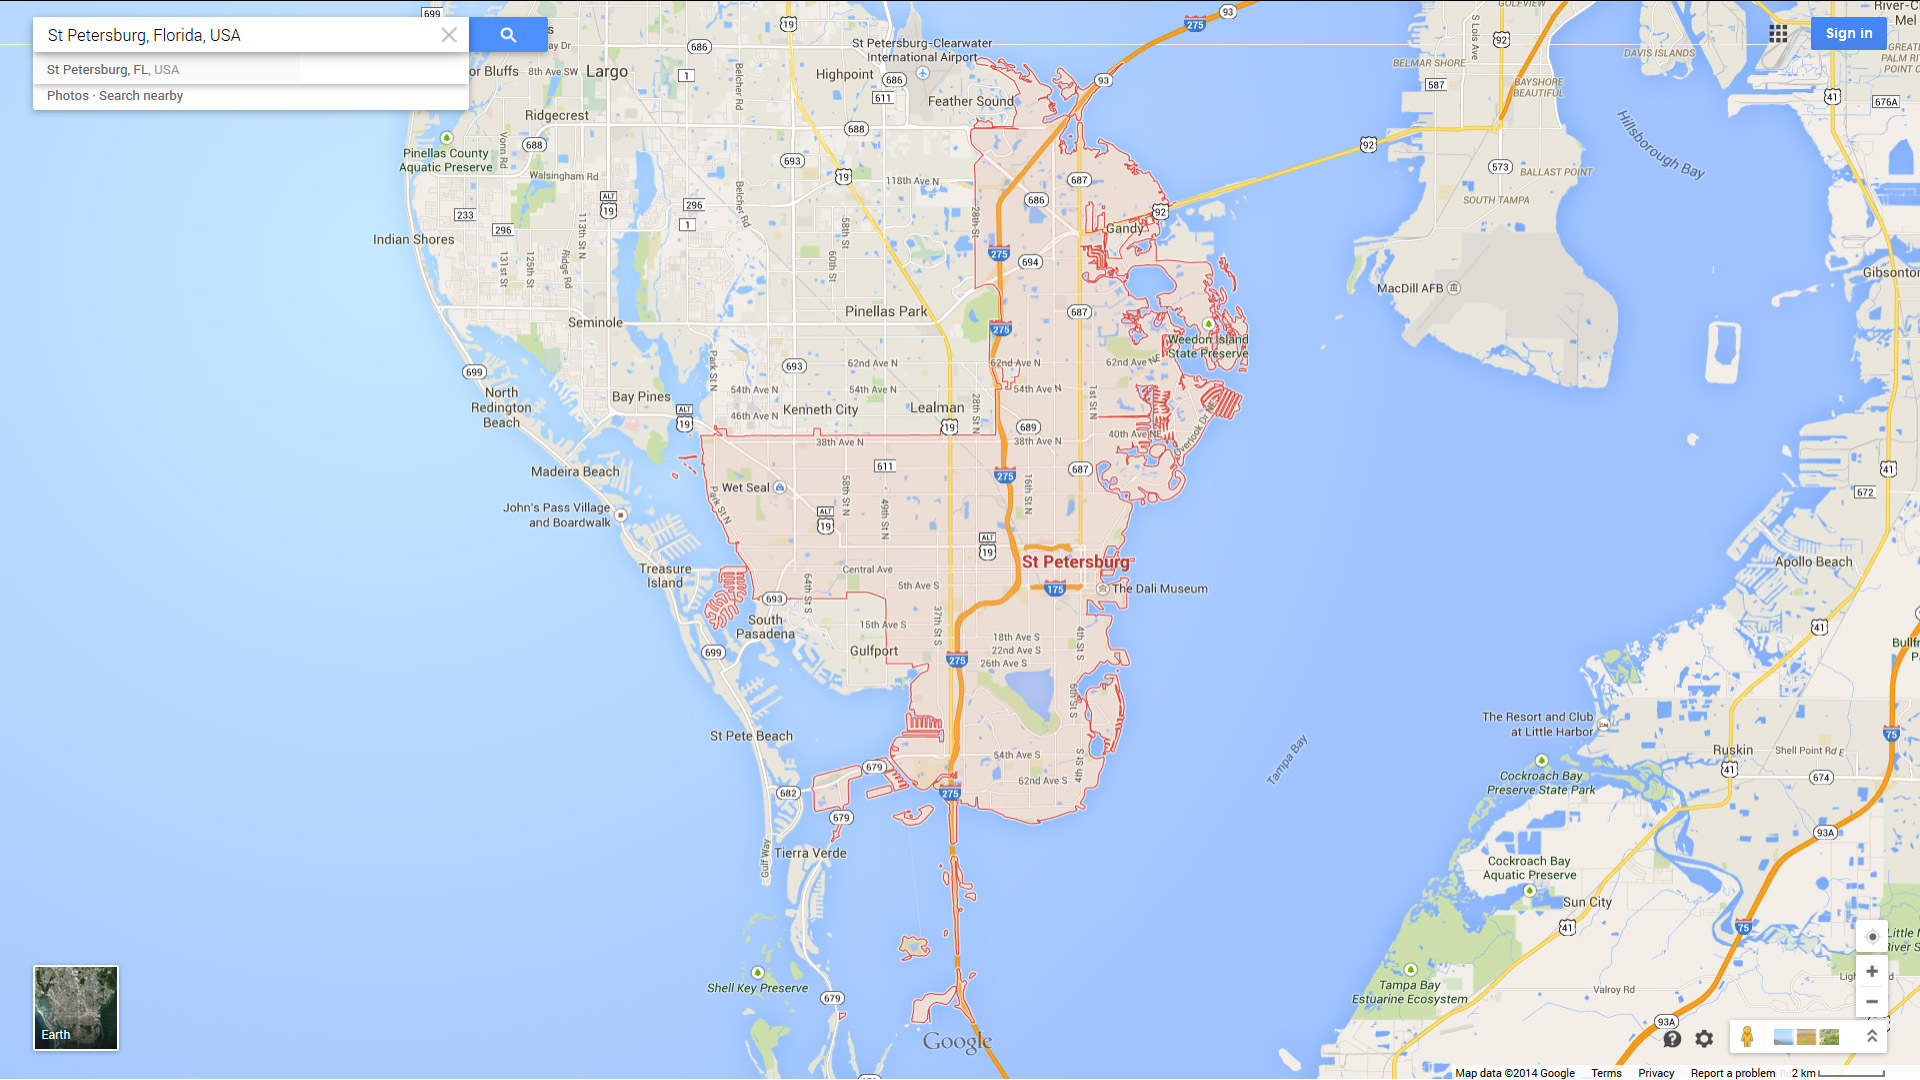 St. Petersburg, Florida Map - St Pete Florida Map